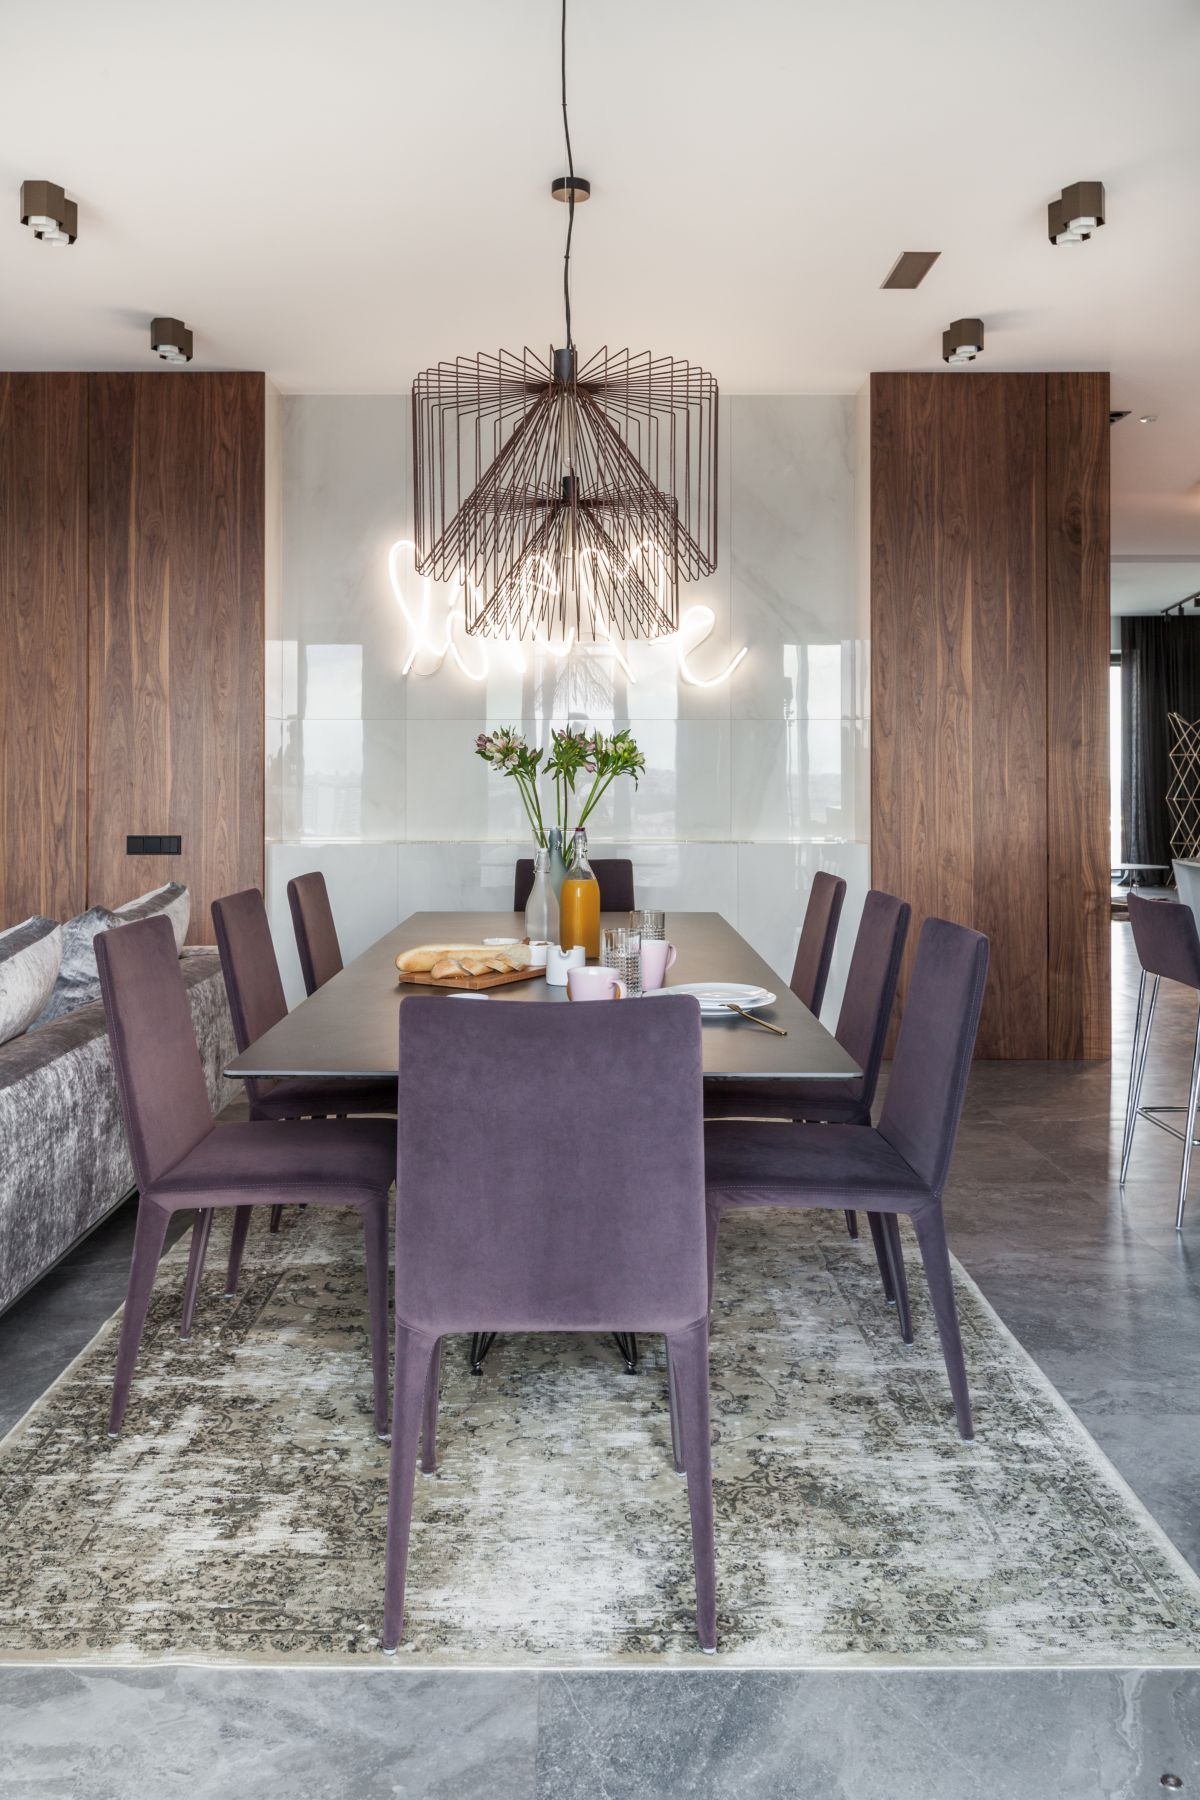 1572340907 574 posh apartment in minsk gets a complete remodel - Posh Apartment in Minsk Gets A Complete Remodel